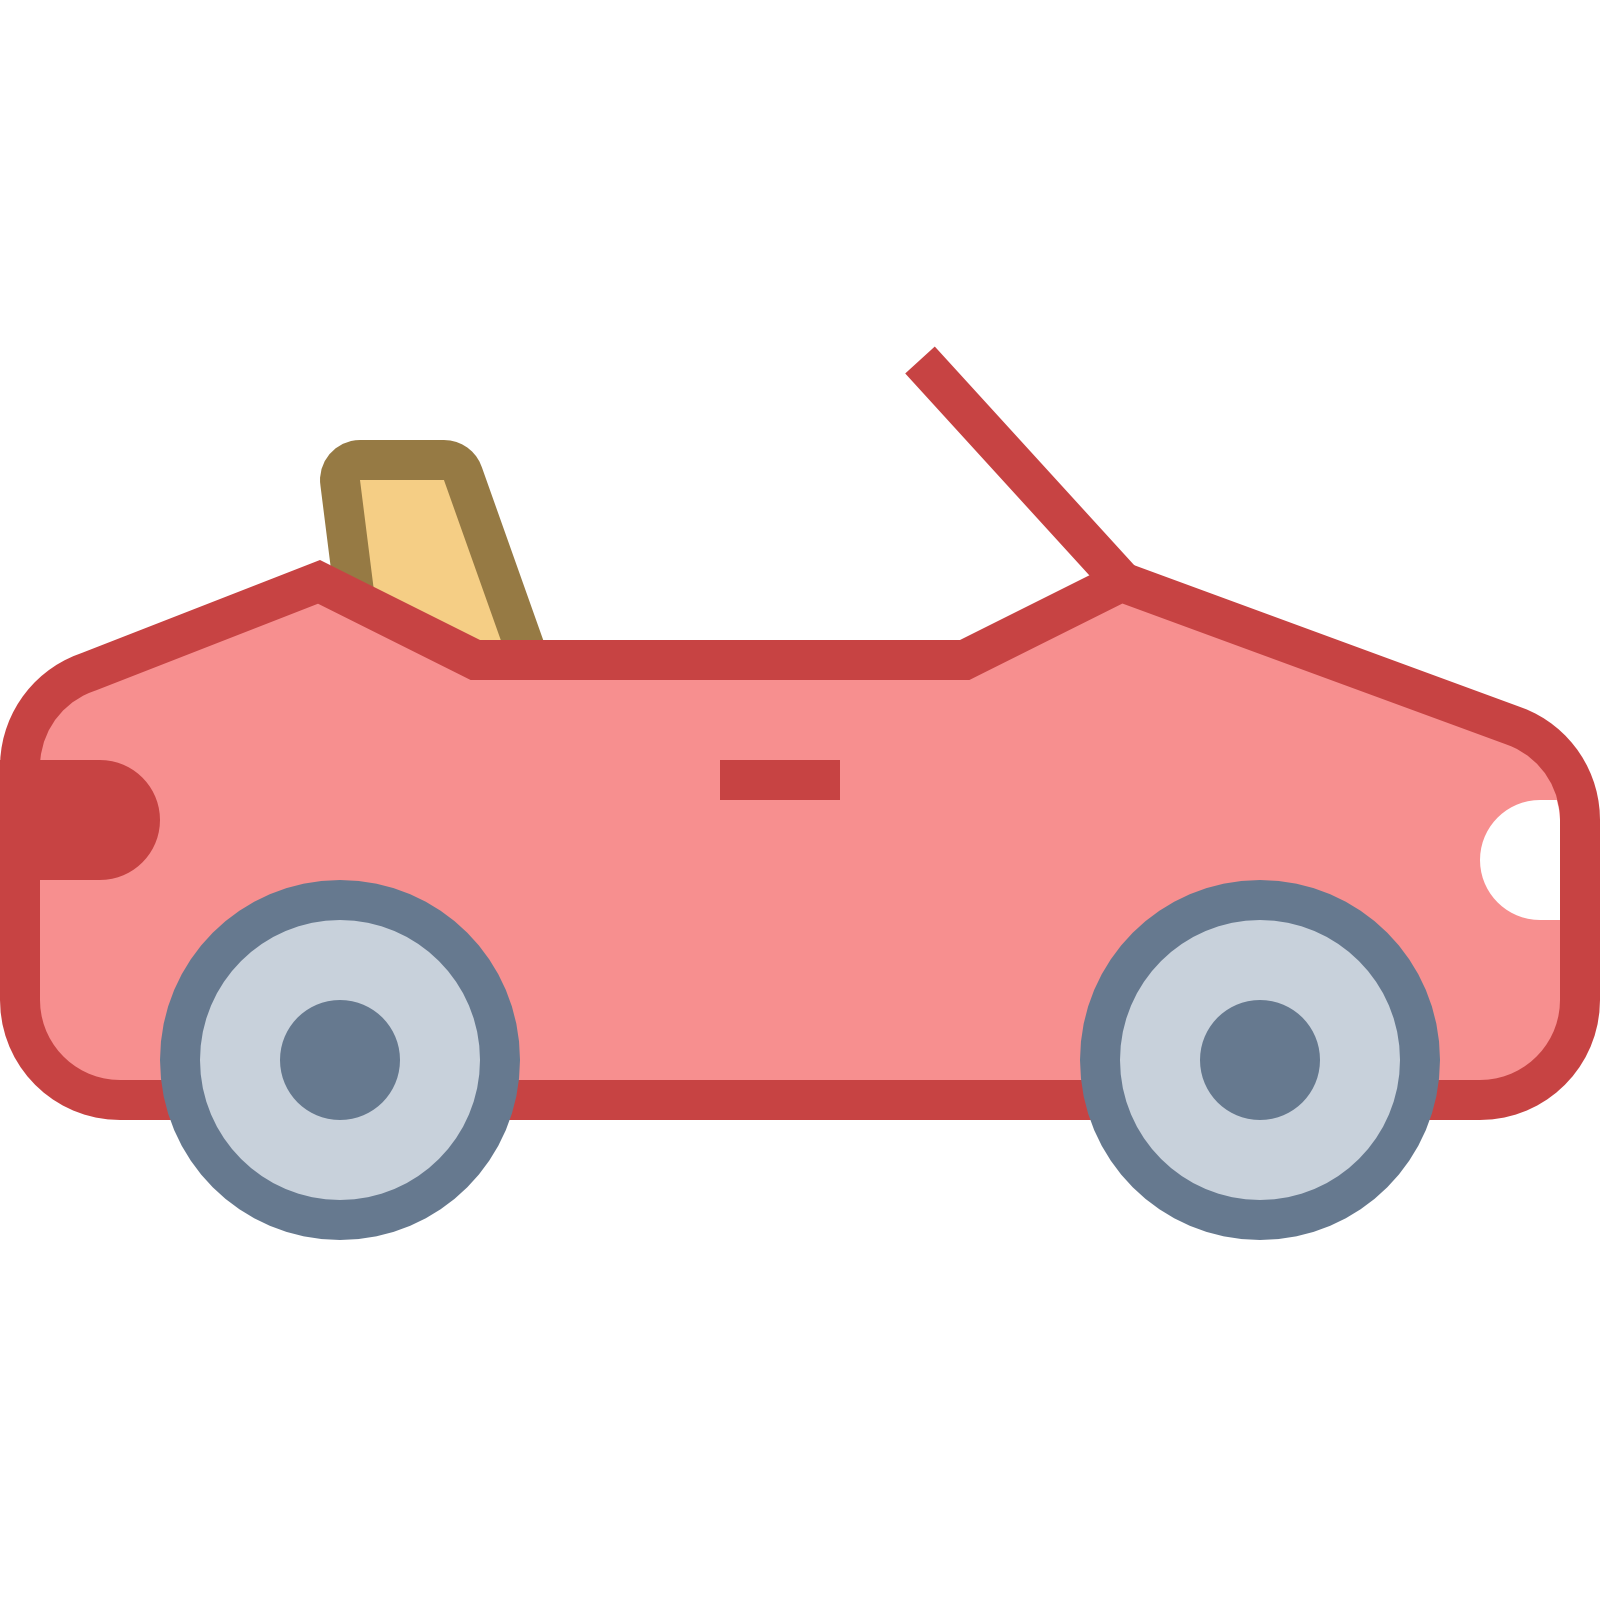 Clipart cars profile. Convertible car cliparts free